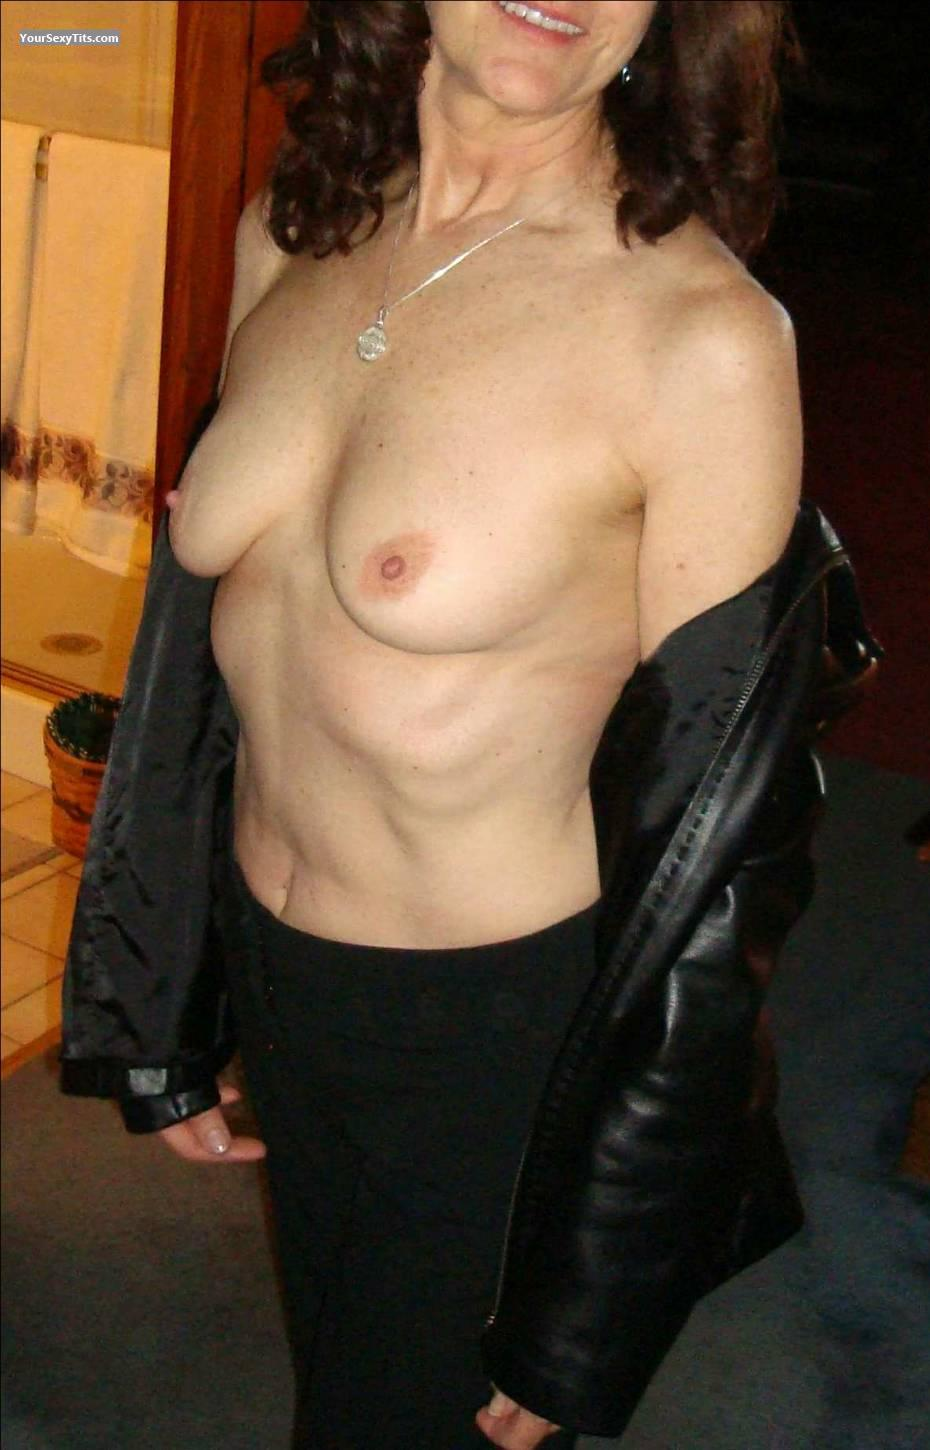 Tit Flash: Small Tits - Debbie from United States